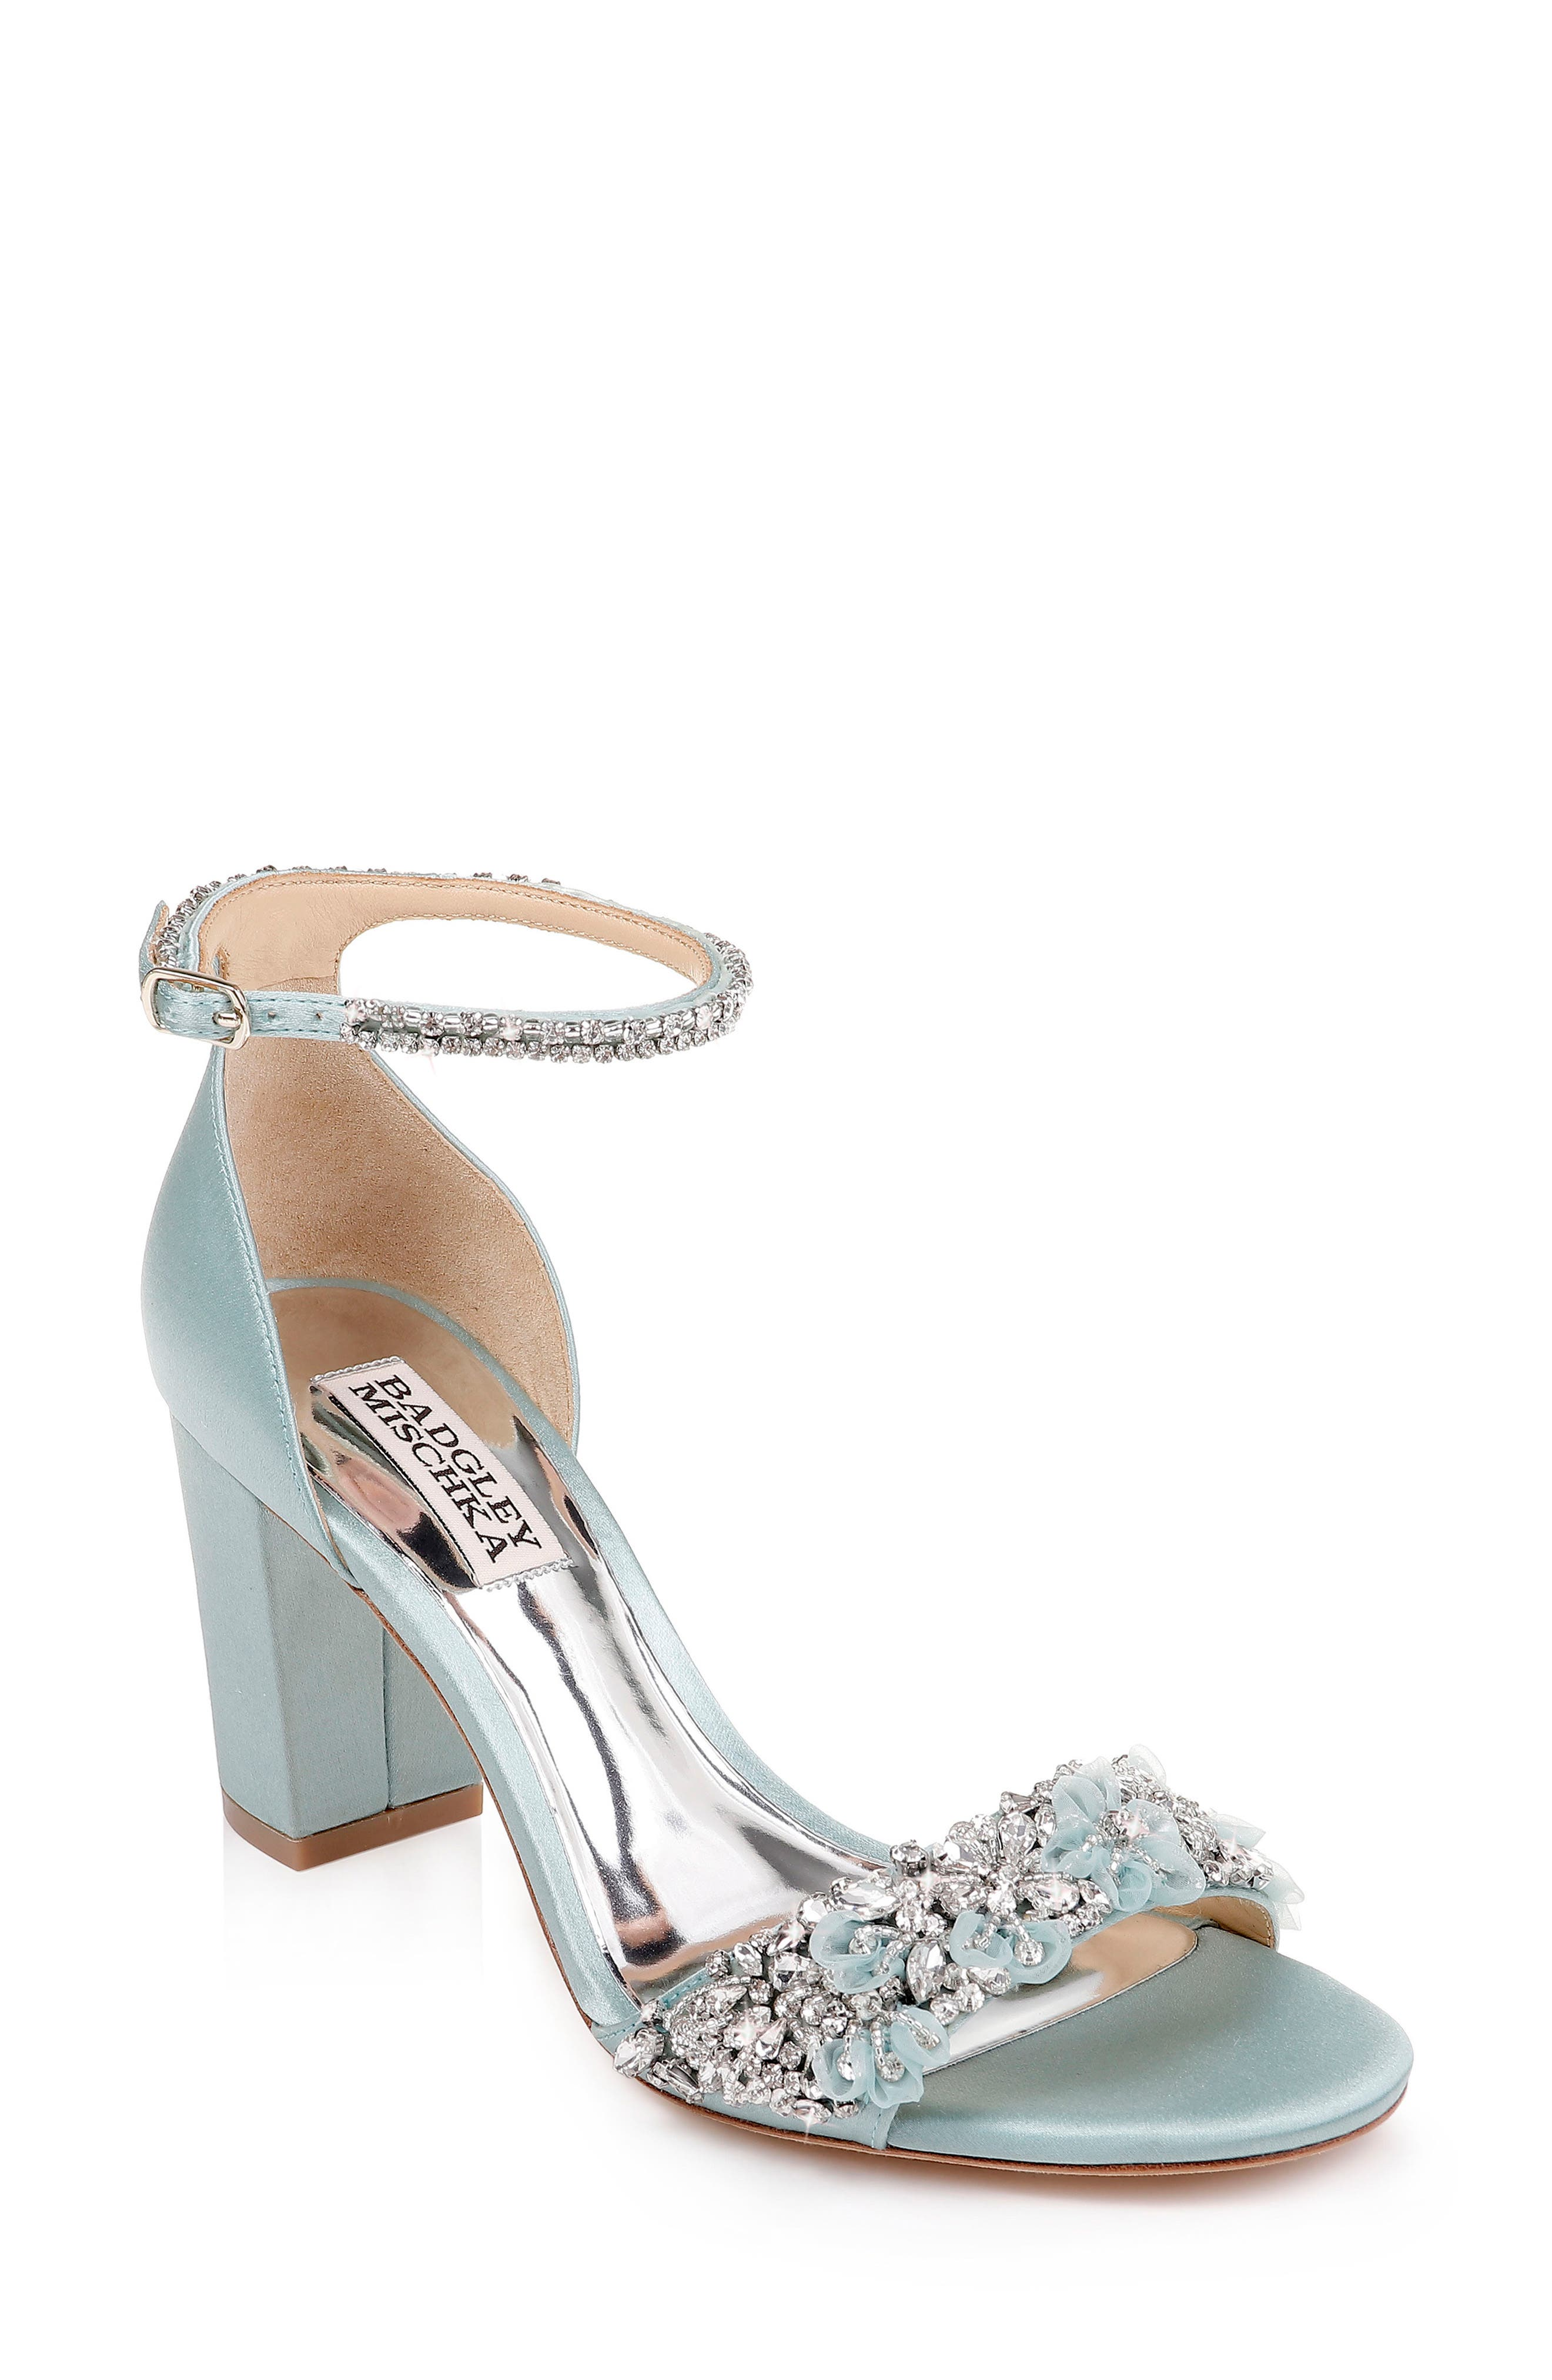 BADGLEY MISCHKA COLLECTION, Badgley Mischka Finesse Ankle Strap Sandal, Main thumbnail 1, color, BLUE RADIANCE SATIN